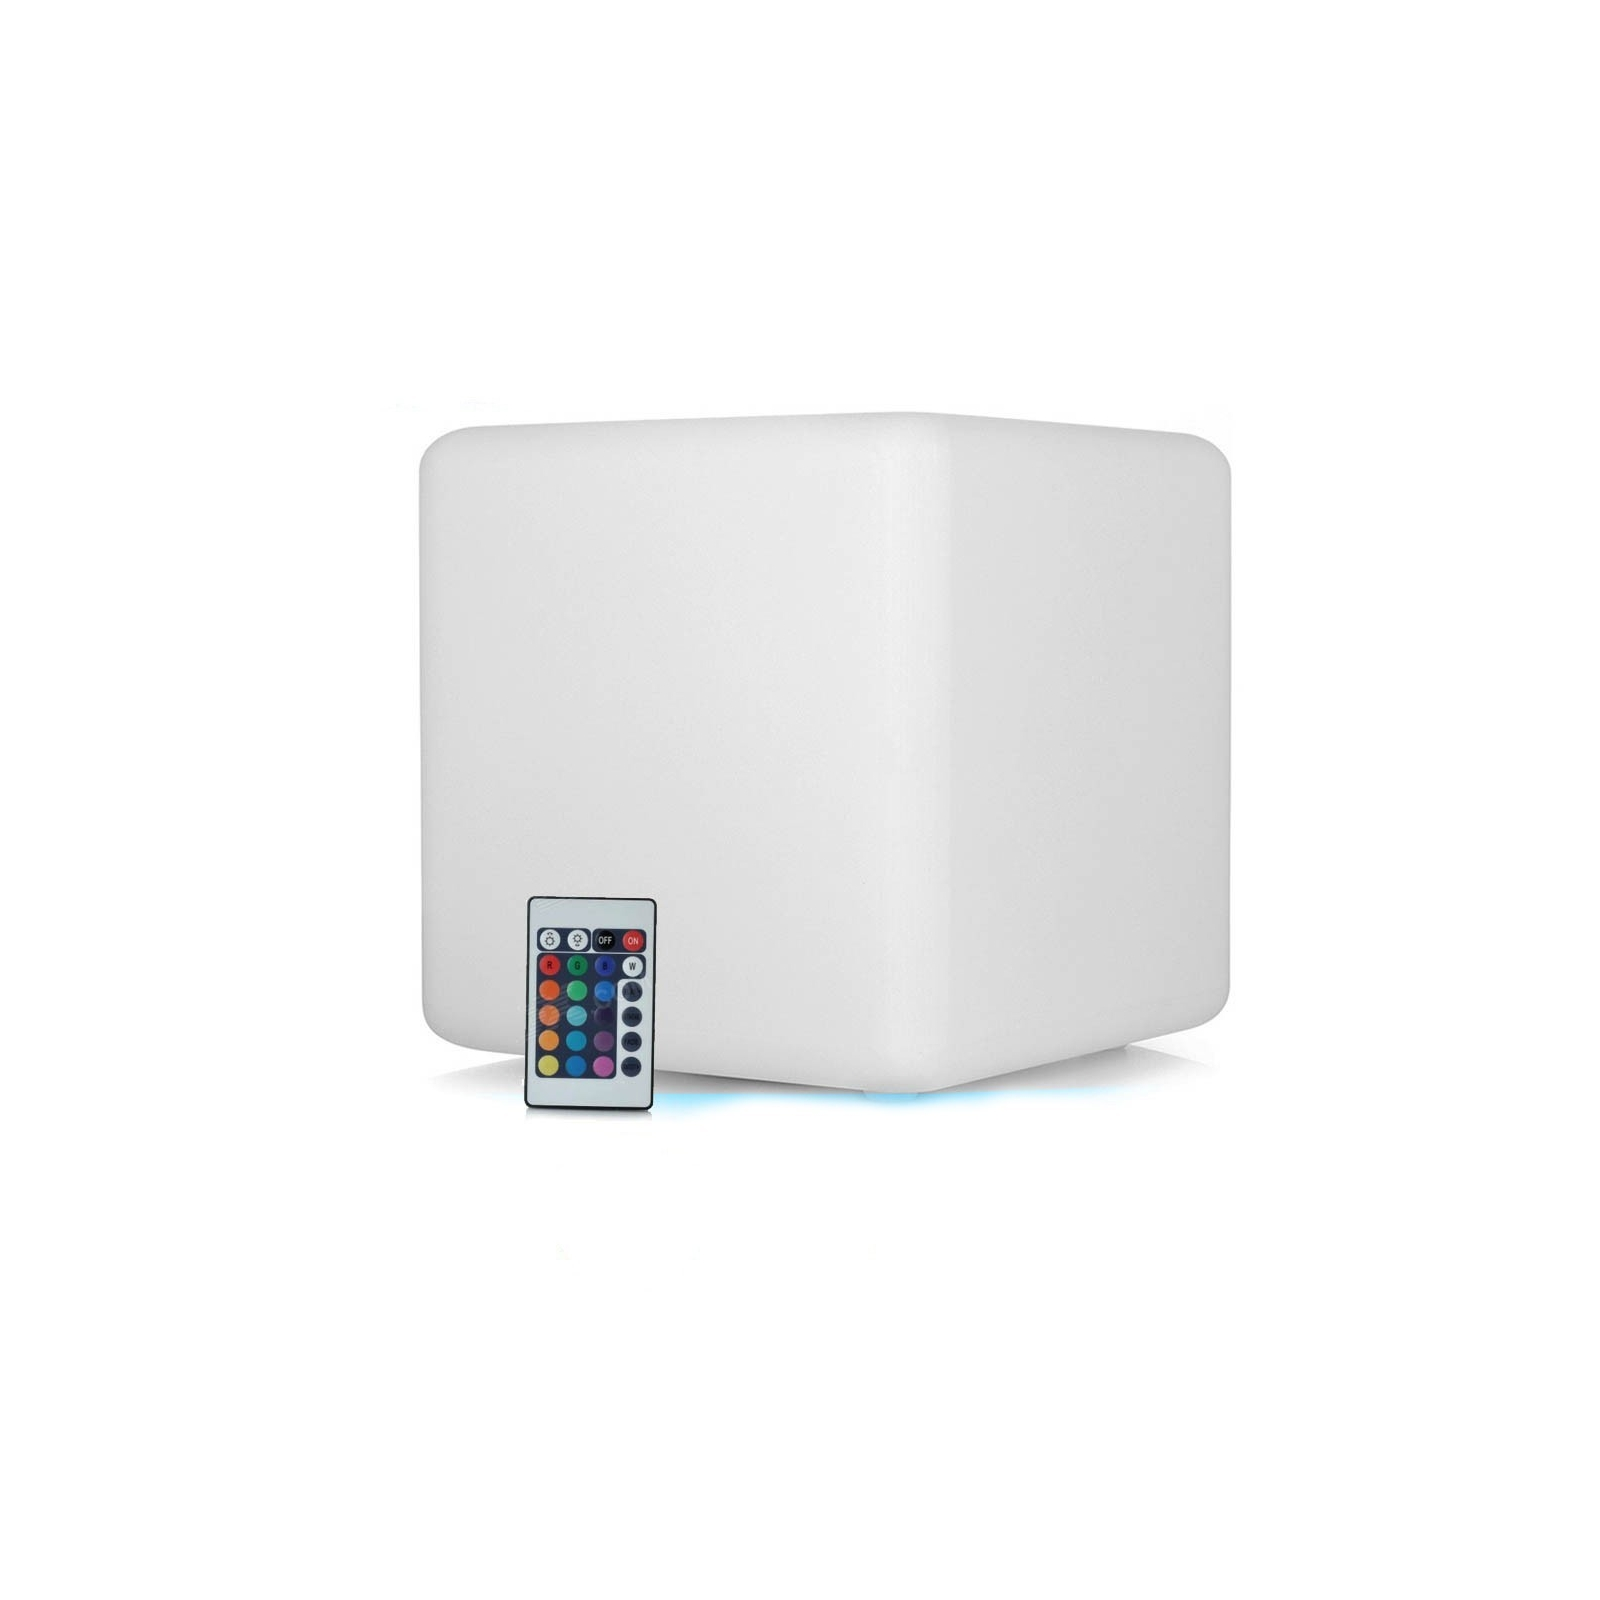 Cube LED Lumineux Multicolore 40CM Rechargeable Sans Fil